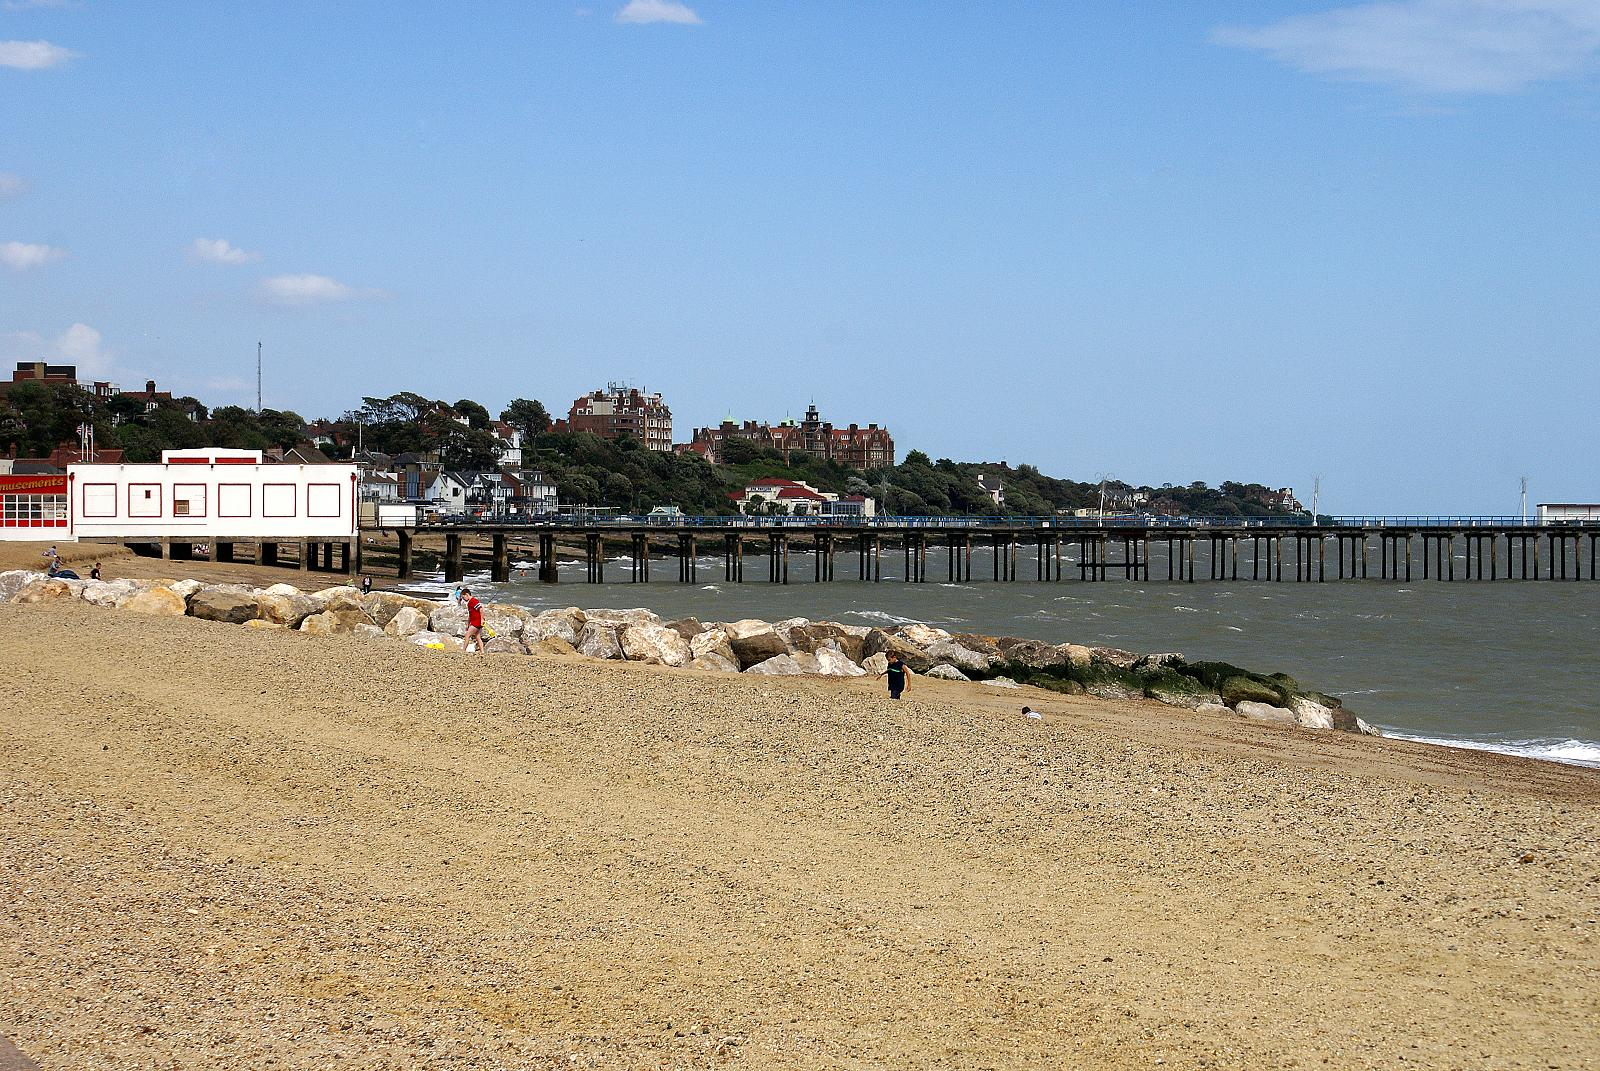 Felixstowe beach -Suffolk -England -14Aug2008.jpg